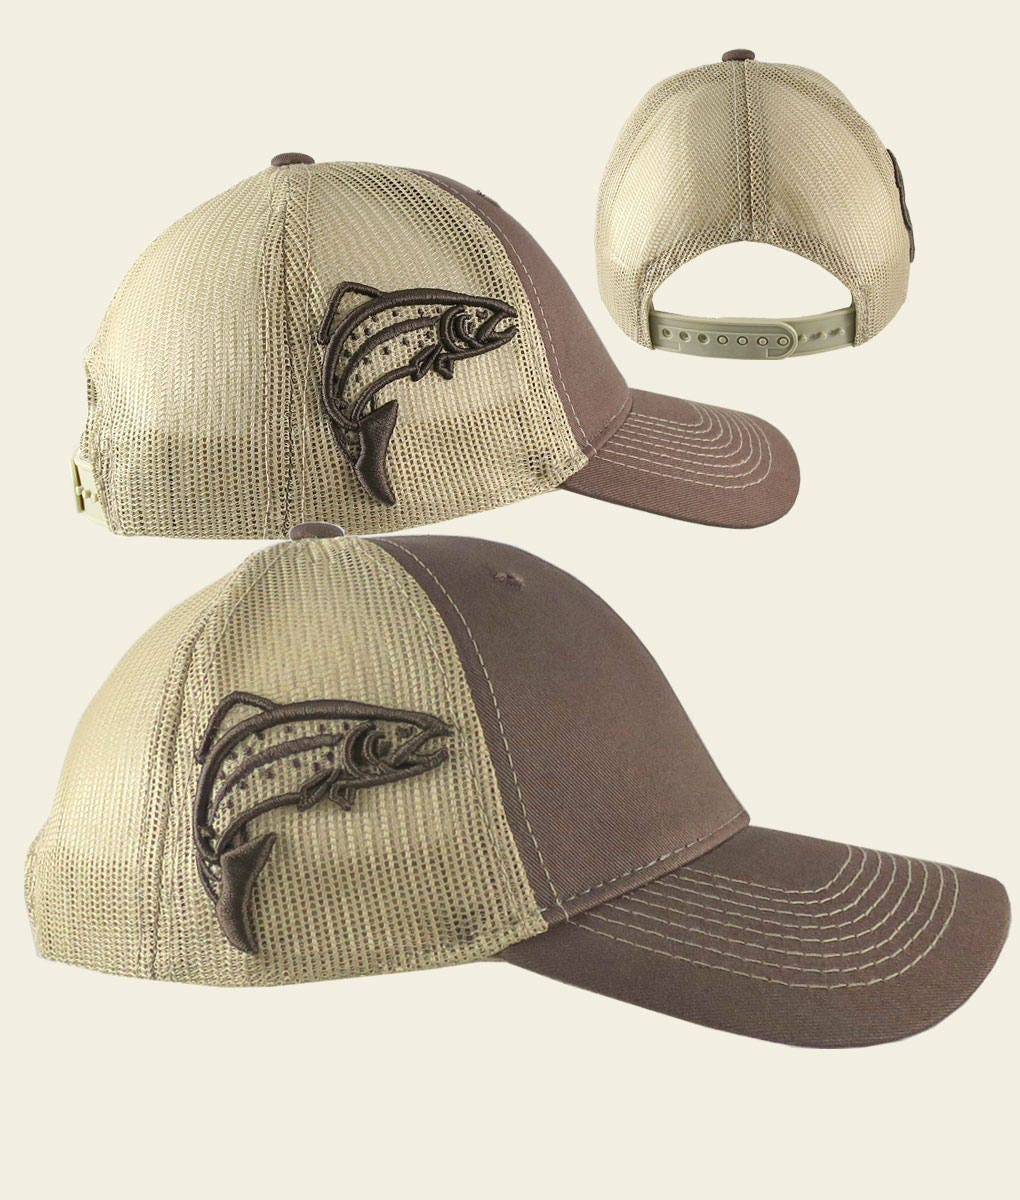 7c98213f54526 Custom Personalized Trout 3D Puff Raised Embroidery on an Adjustable ...